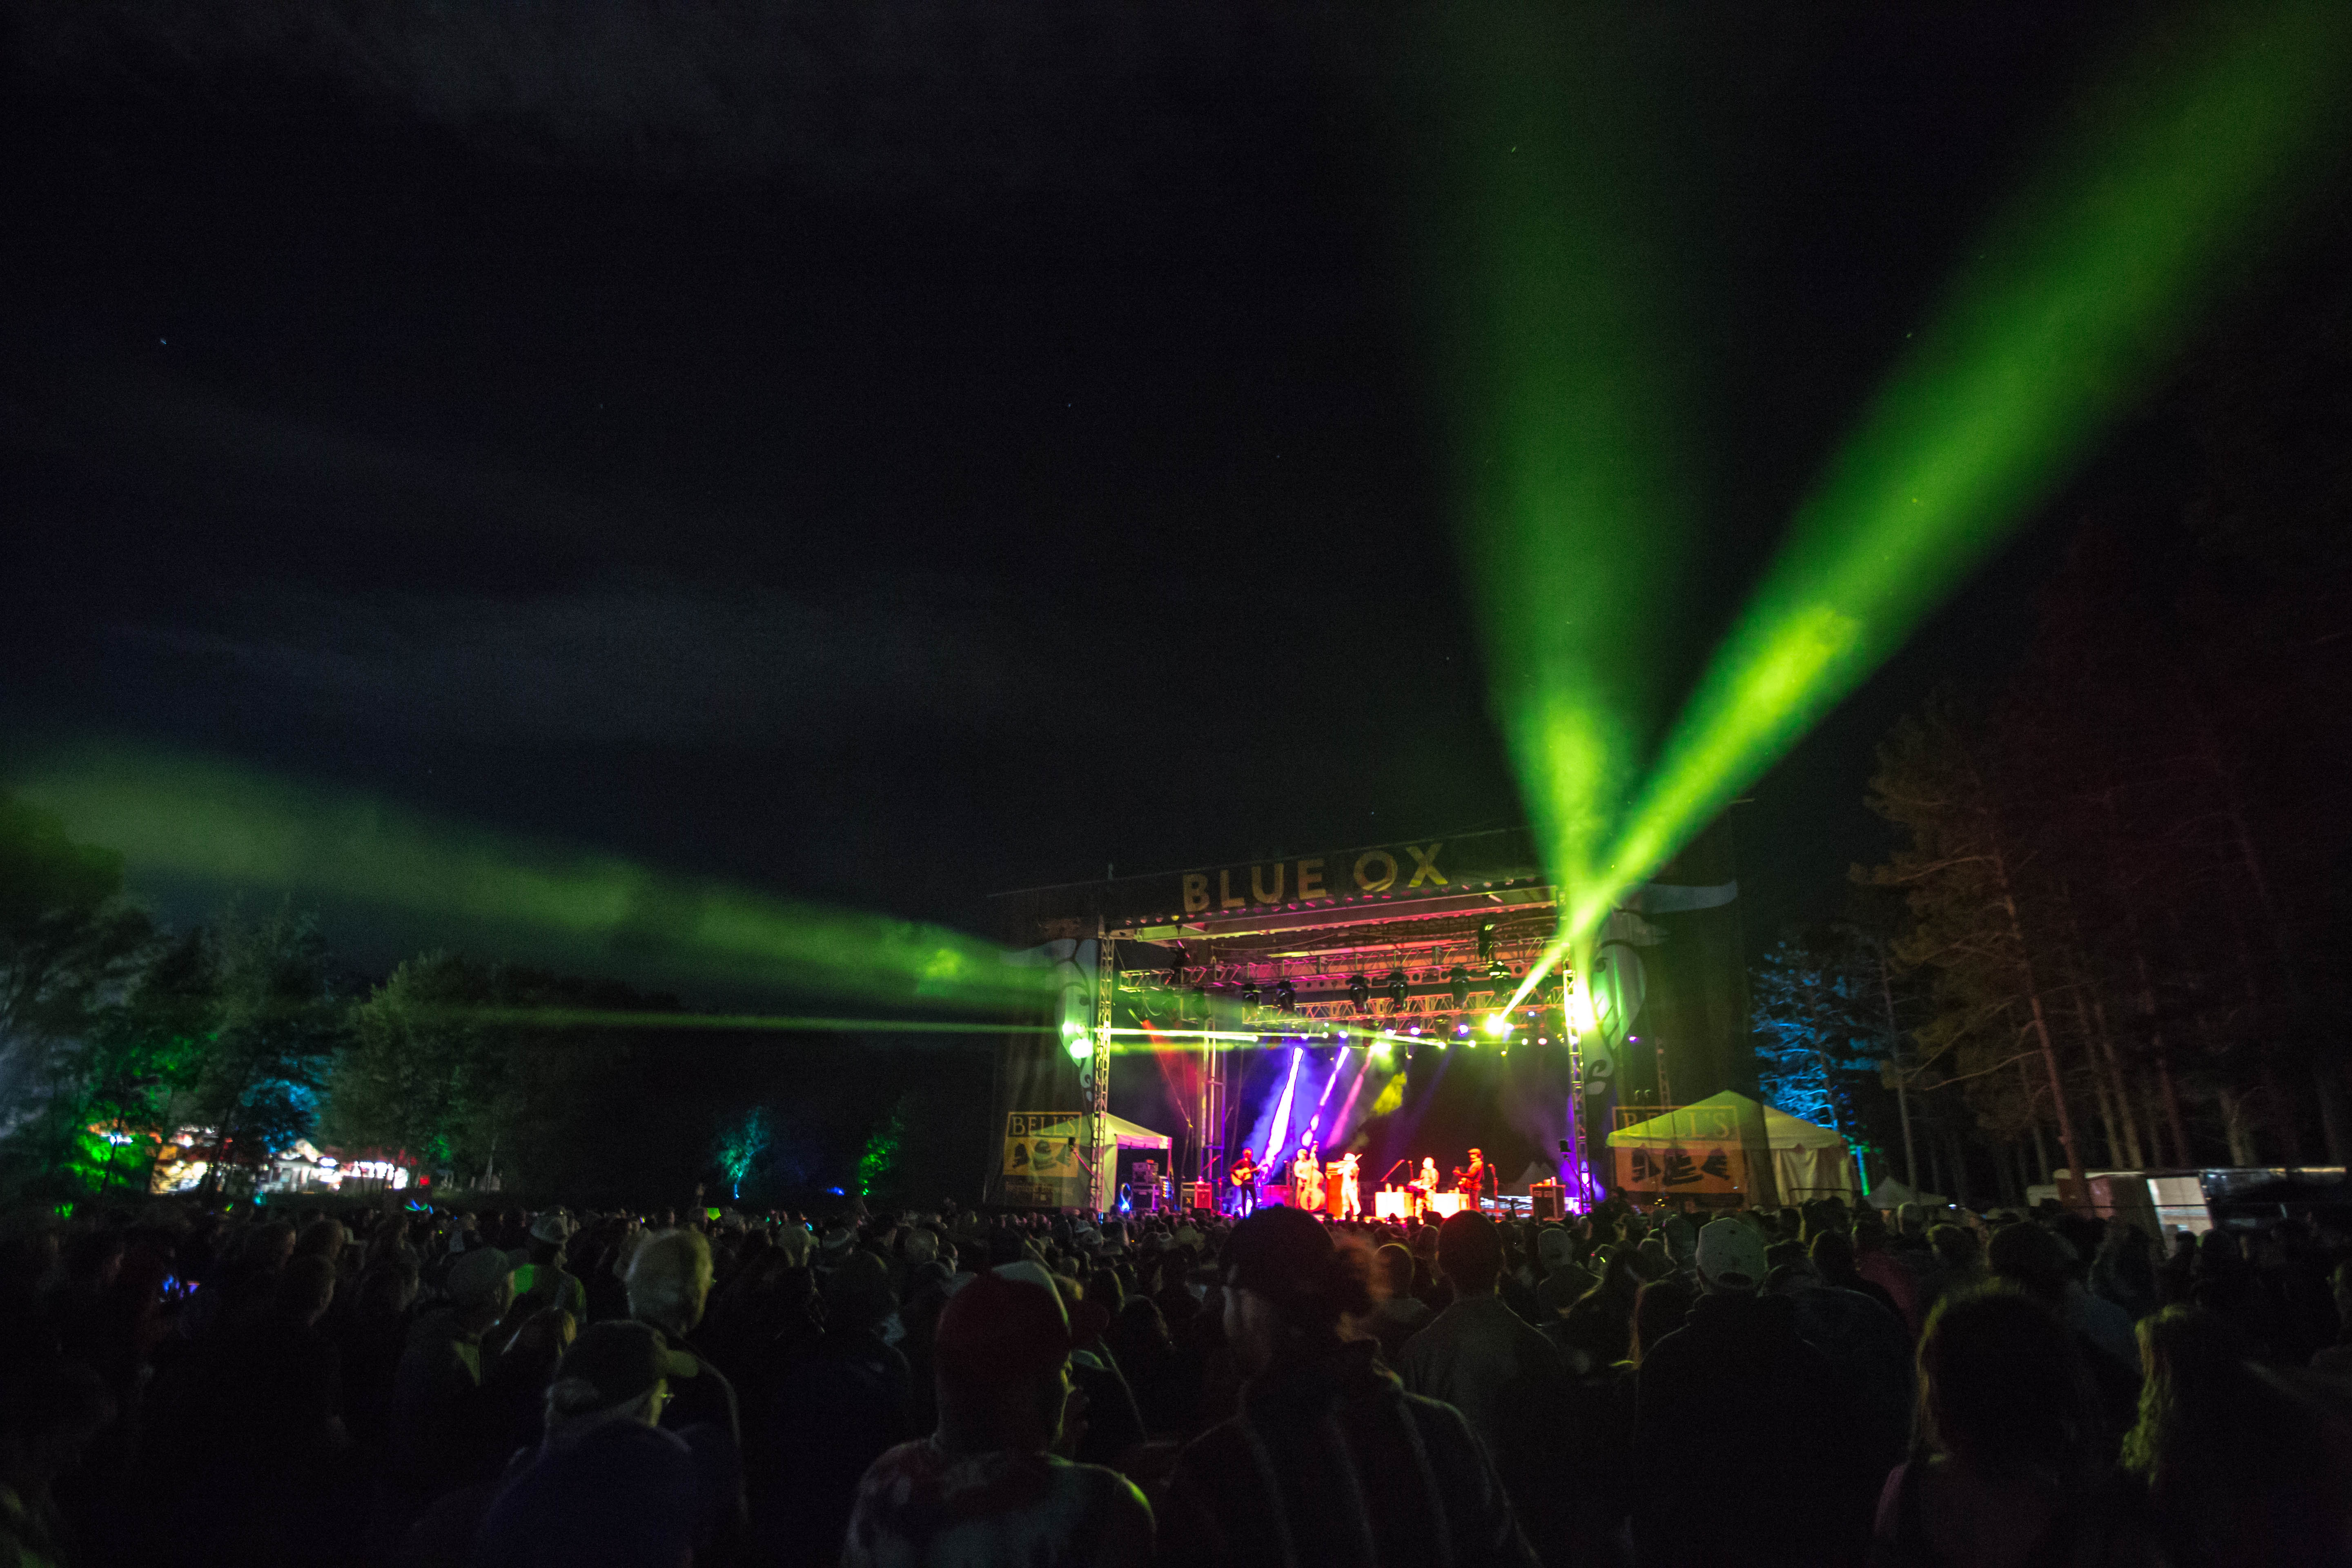 Blue Ox Music Festival 2019 in Photographs